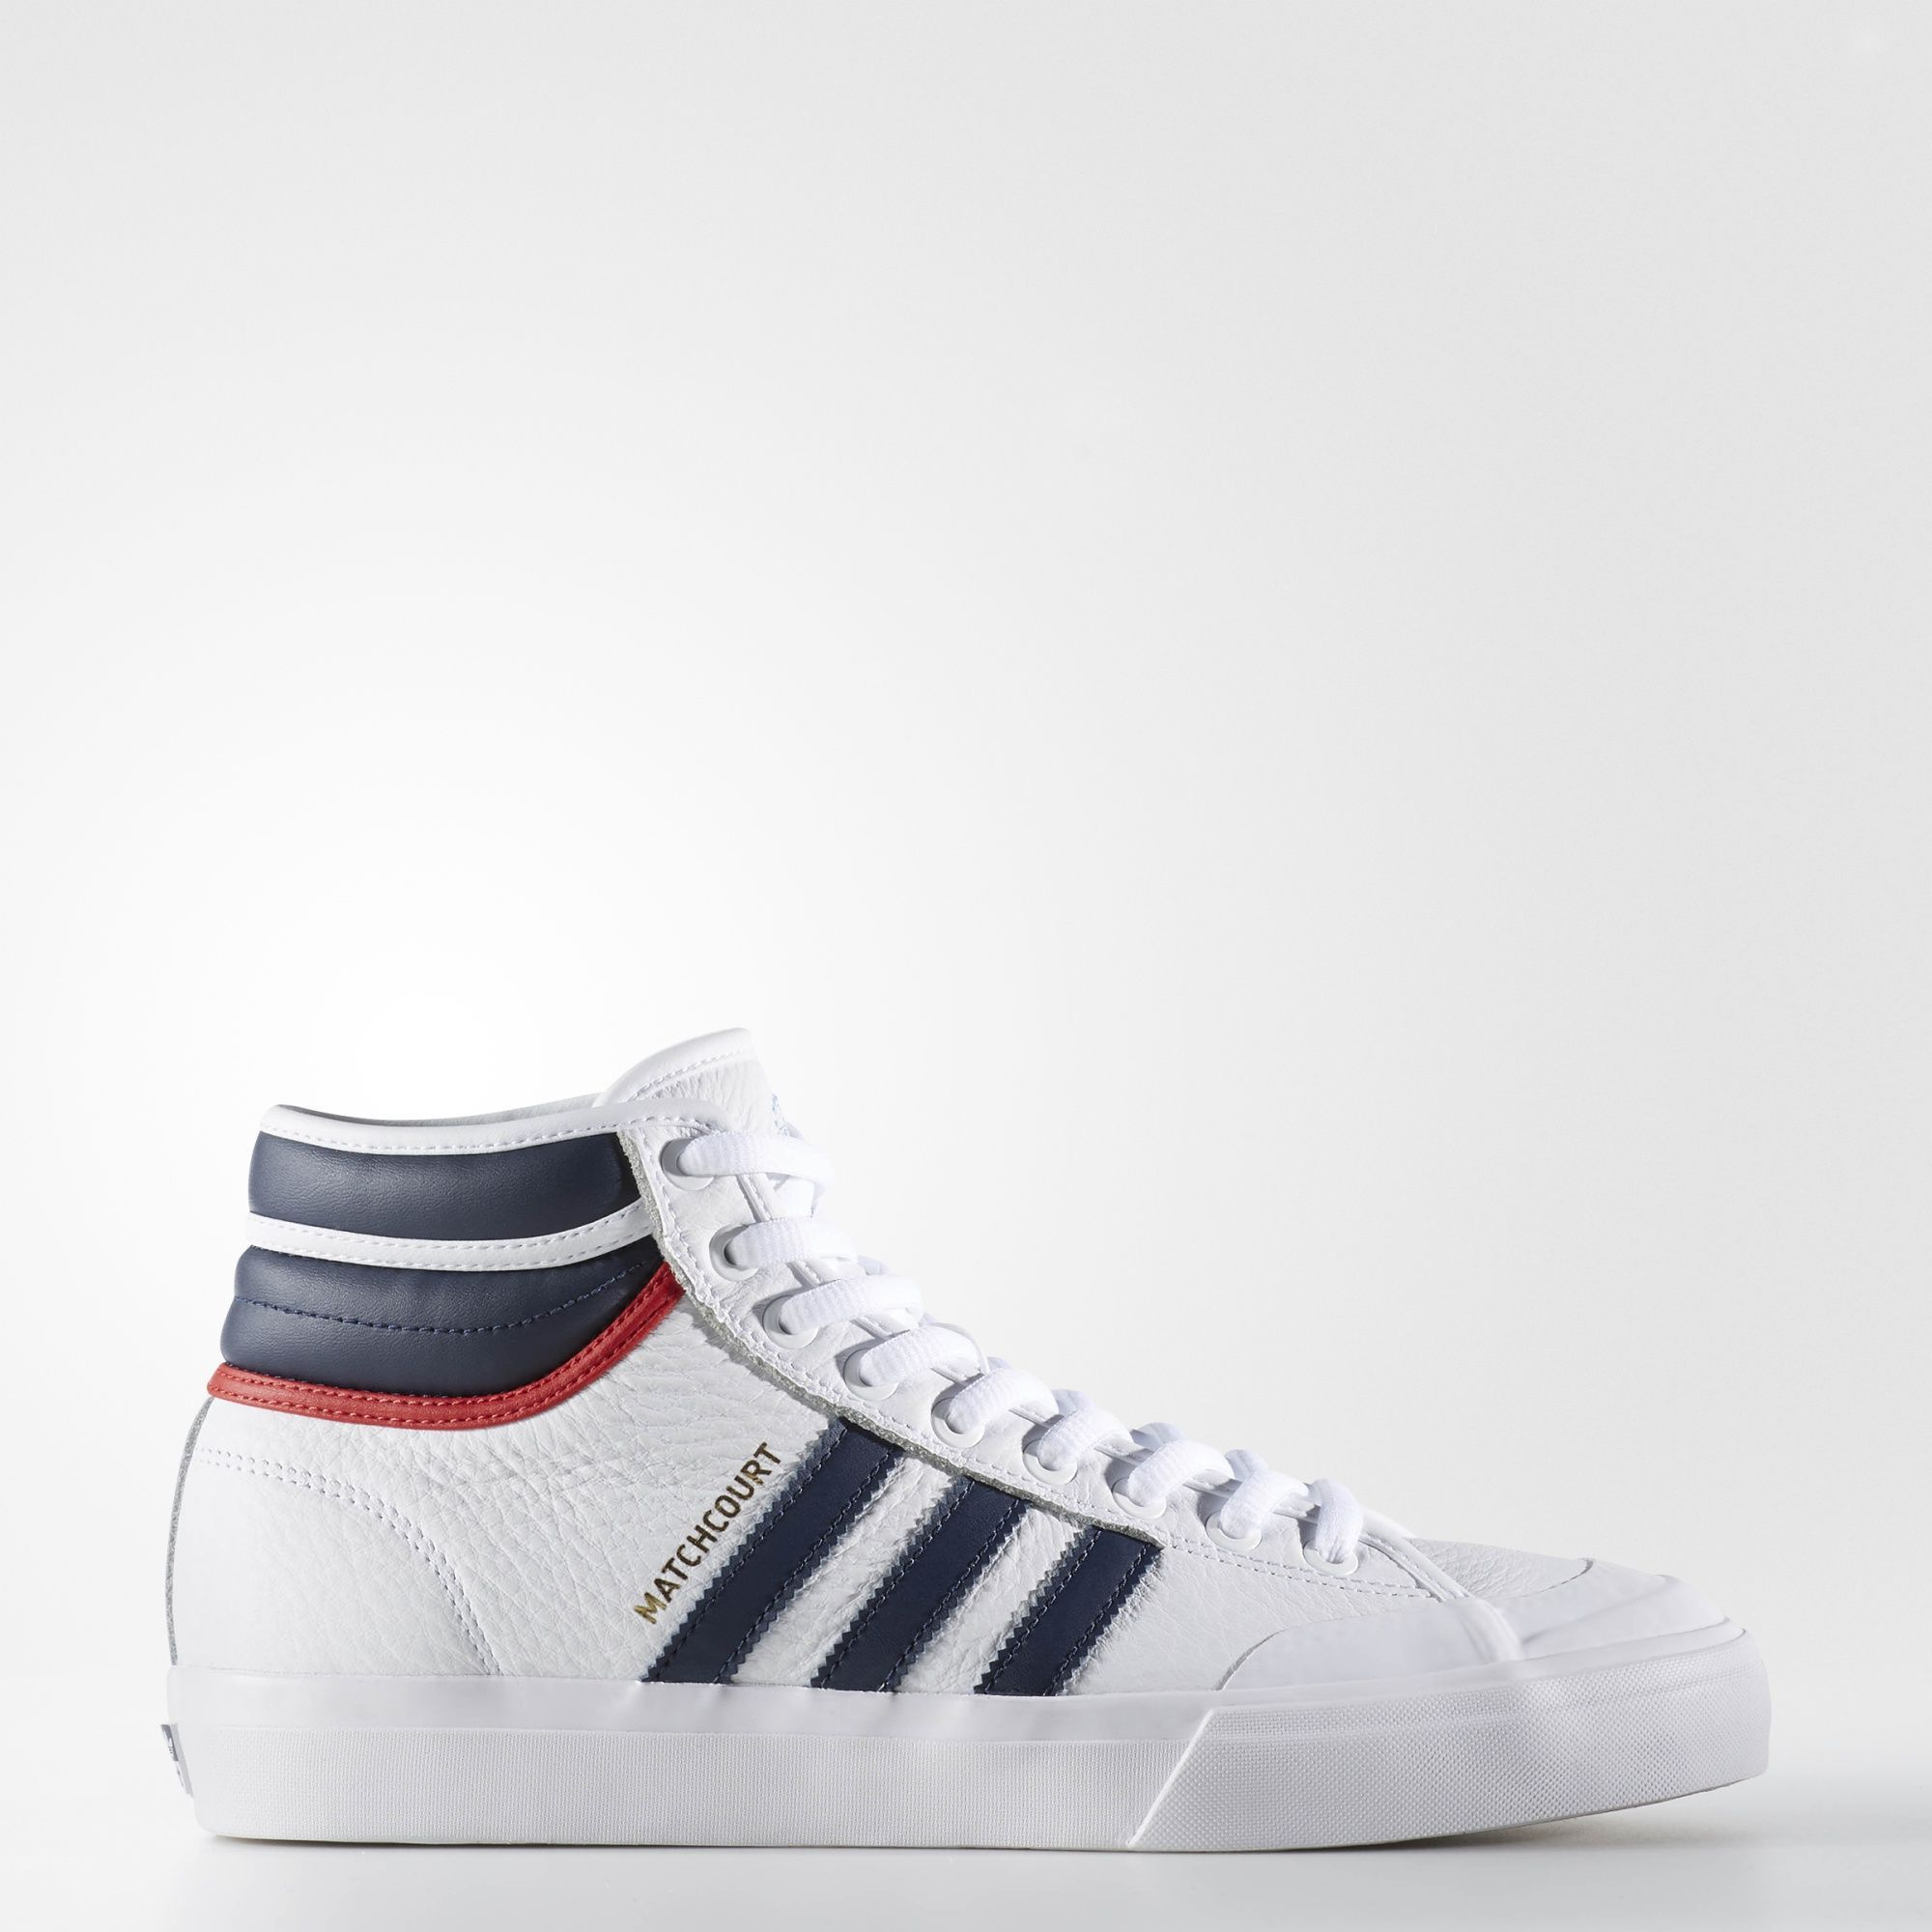 adidas - Matchcourt High RX2 Shoes